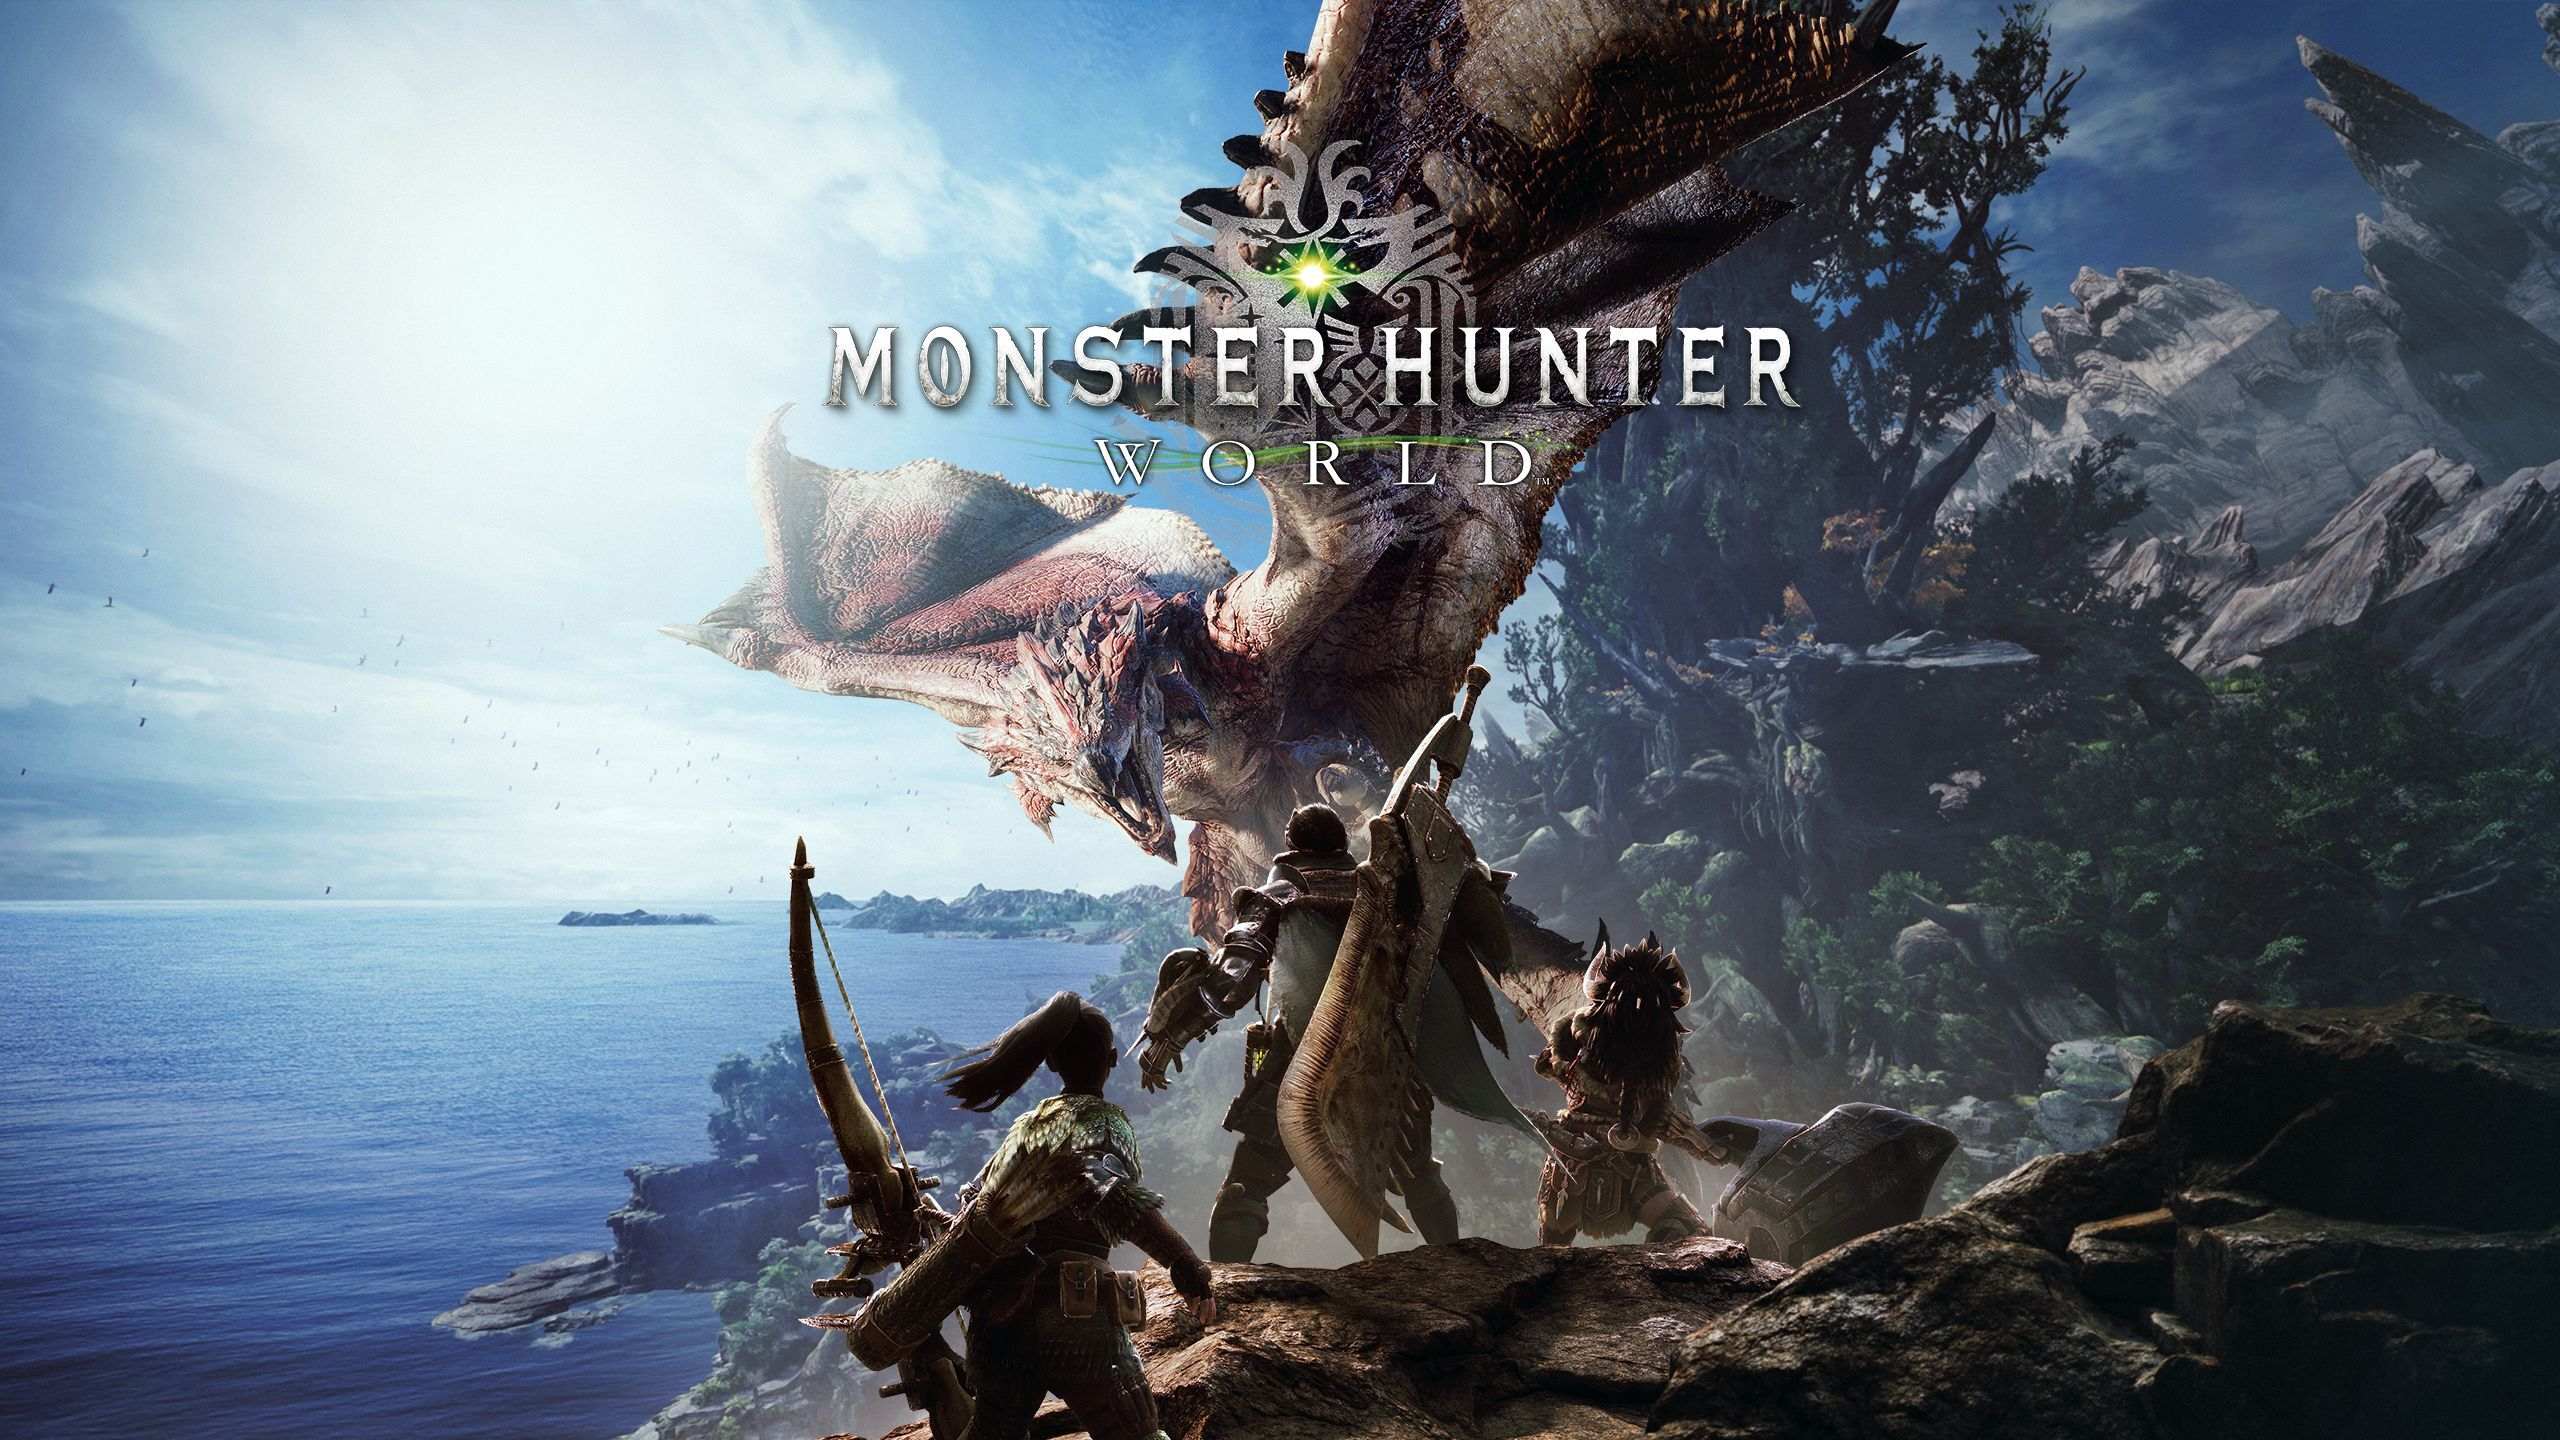 Monster Hunter World: Does this game have loot boxes?